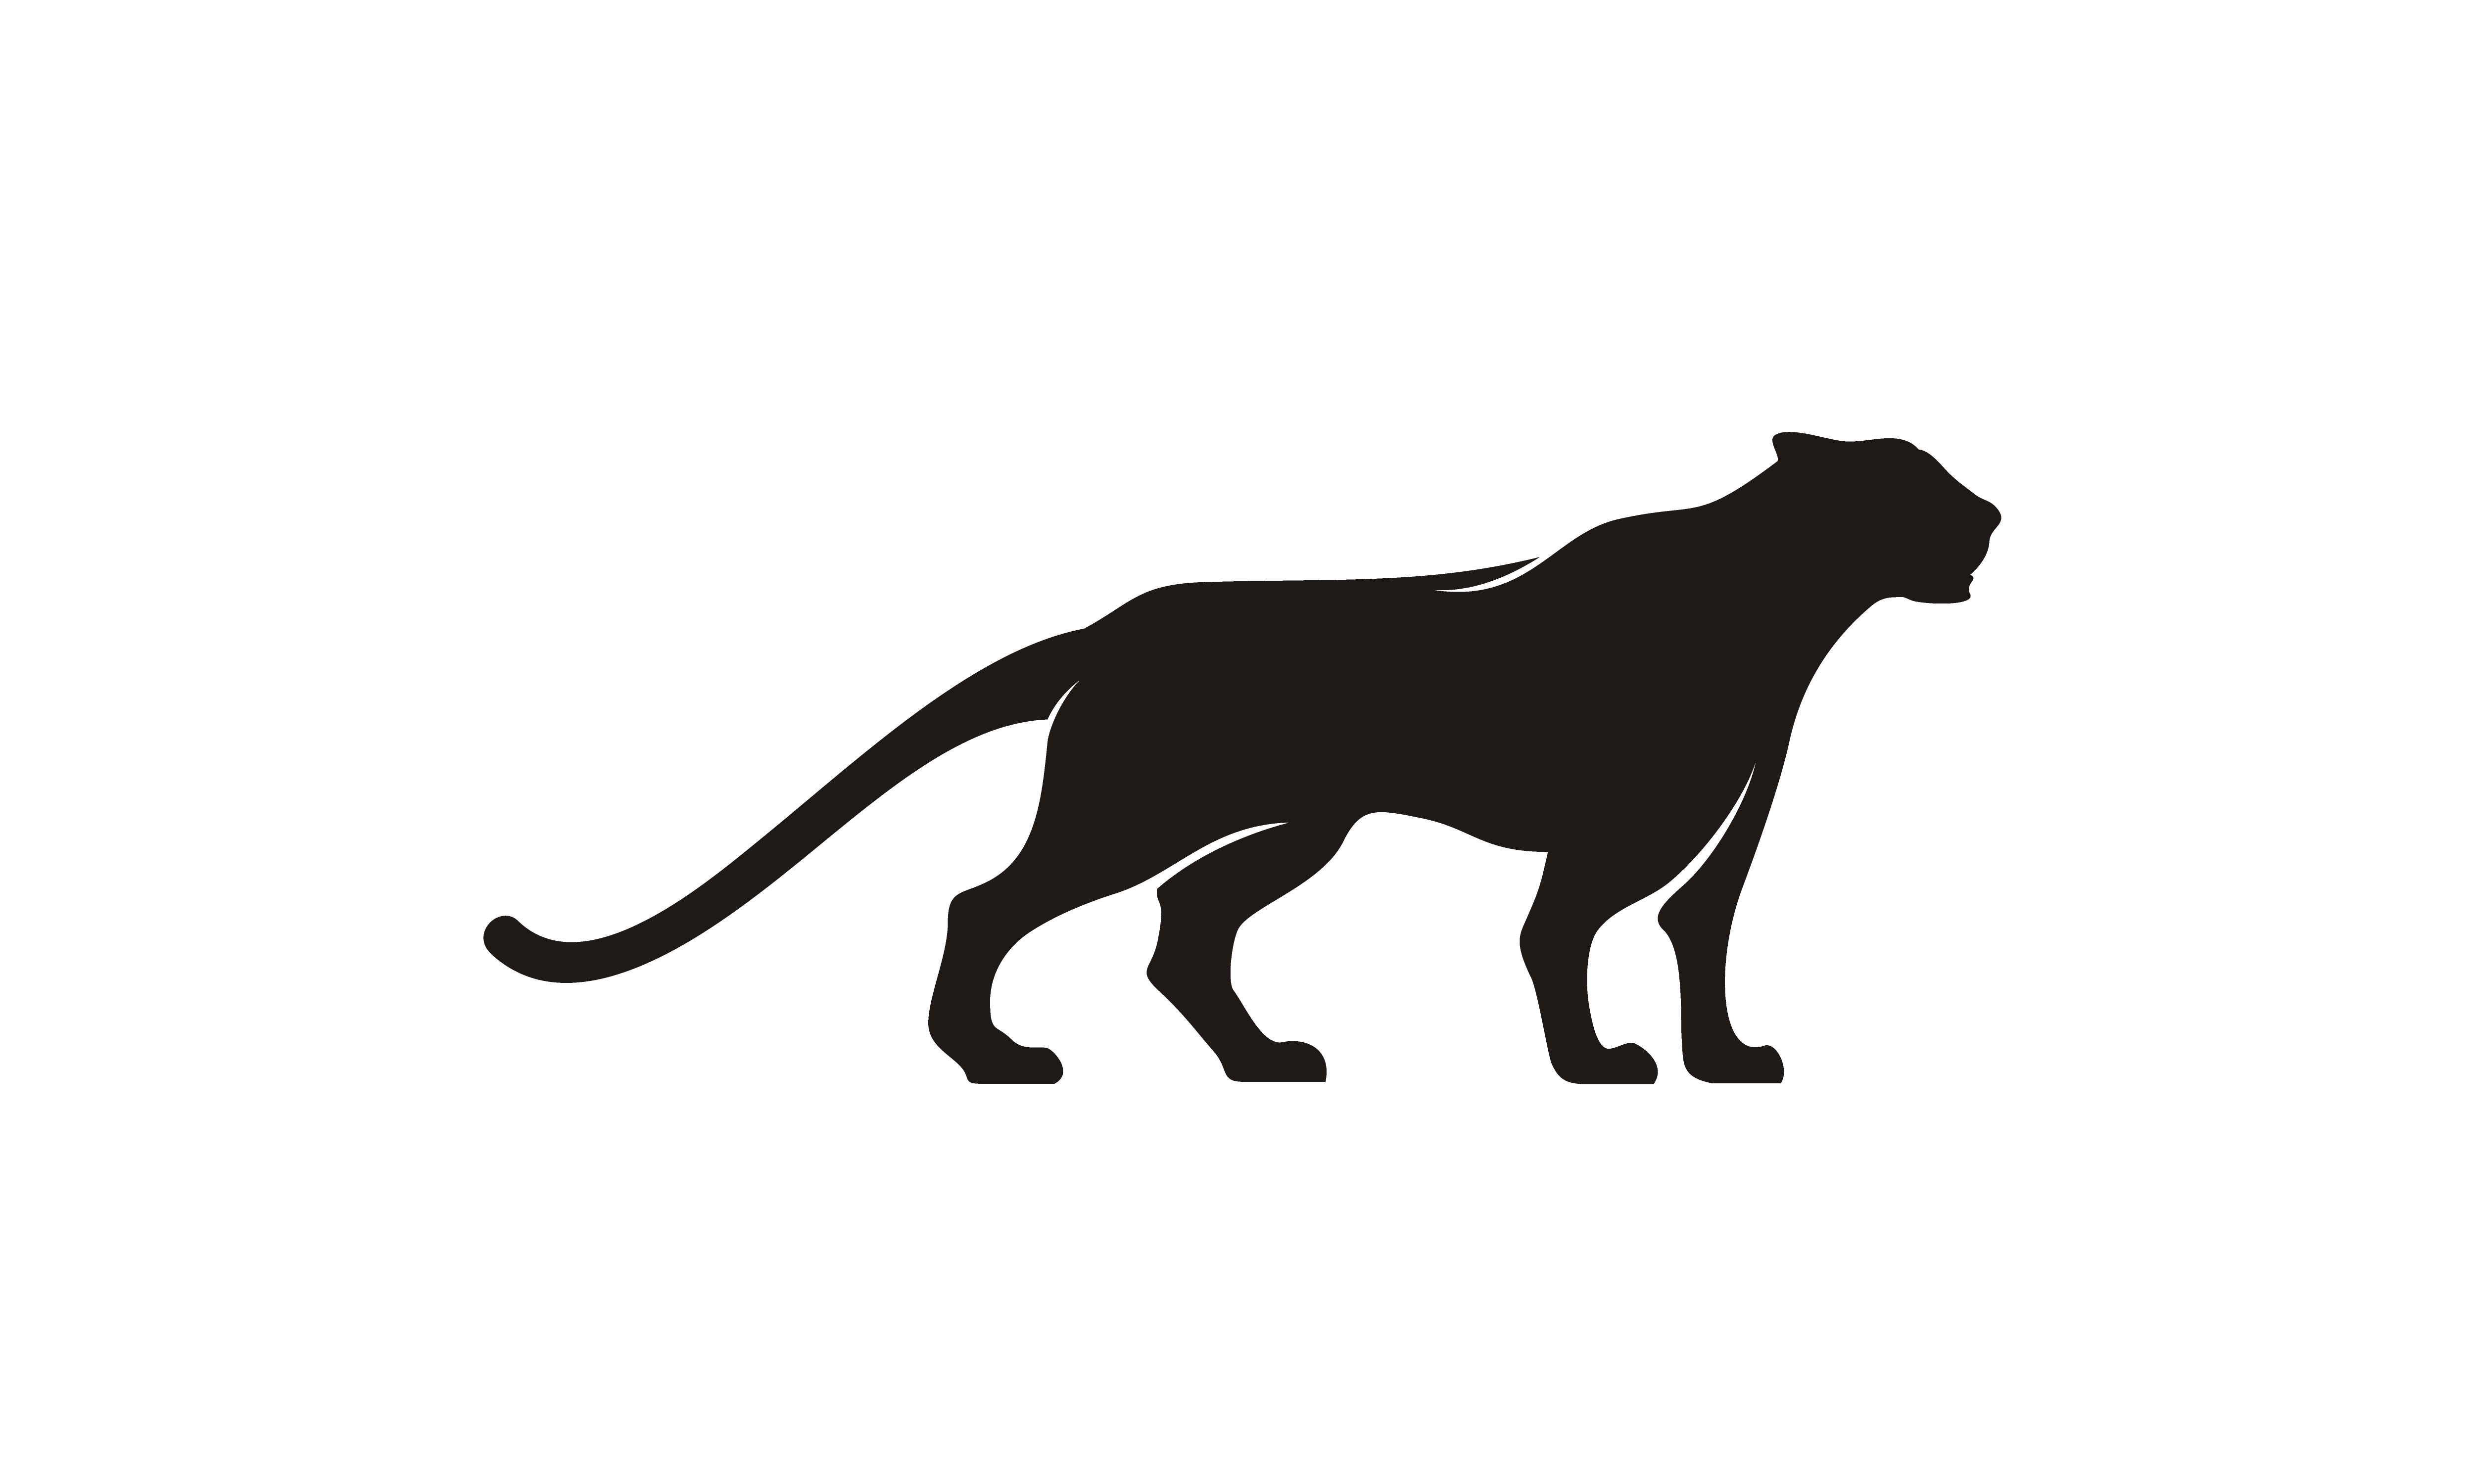 Download Free Jaguar Puma Lion Panther Silhouette Logo Graphic By Enola99d for Cricut Explore, Silhouette and other cutting machines.